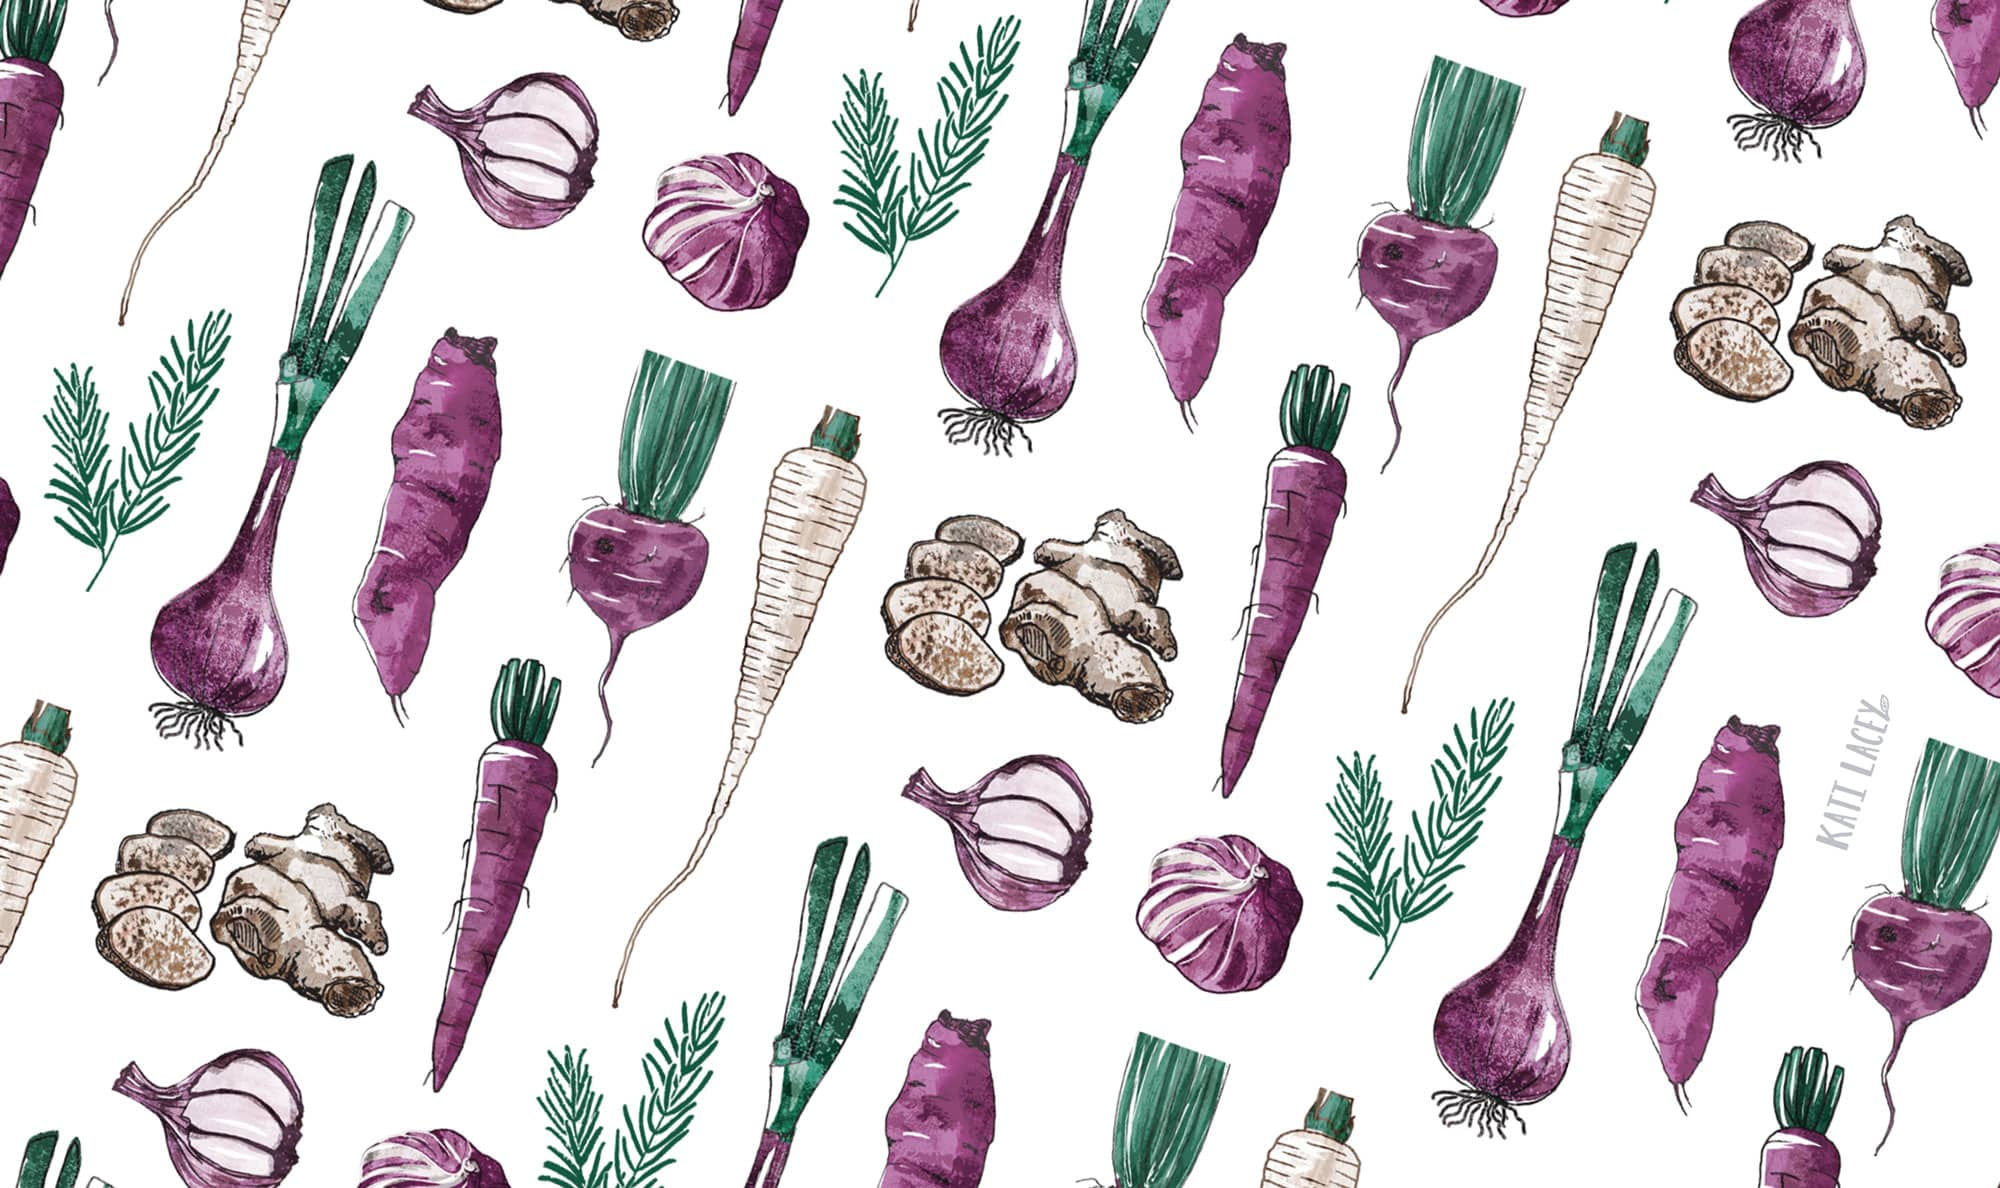 roast-roasted-oven-vegetables=winter=rosemary=carrots-beetroot-seet-potatoes-parsnip-ginger-red-onion-winter-recipe-vegetarian-vegan-flavoursome-spice